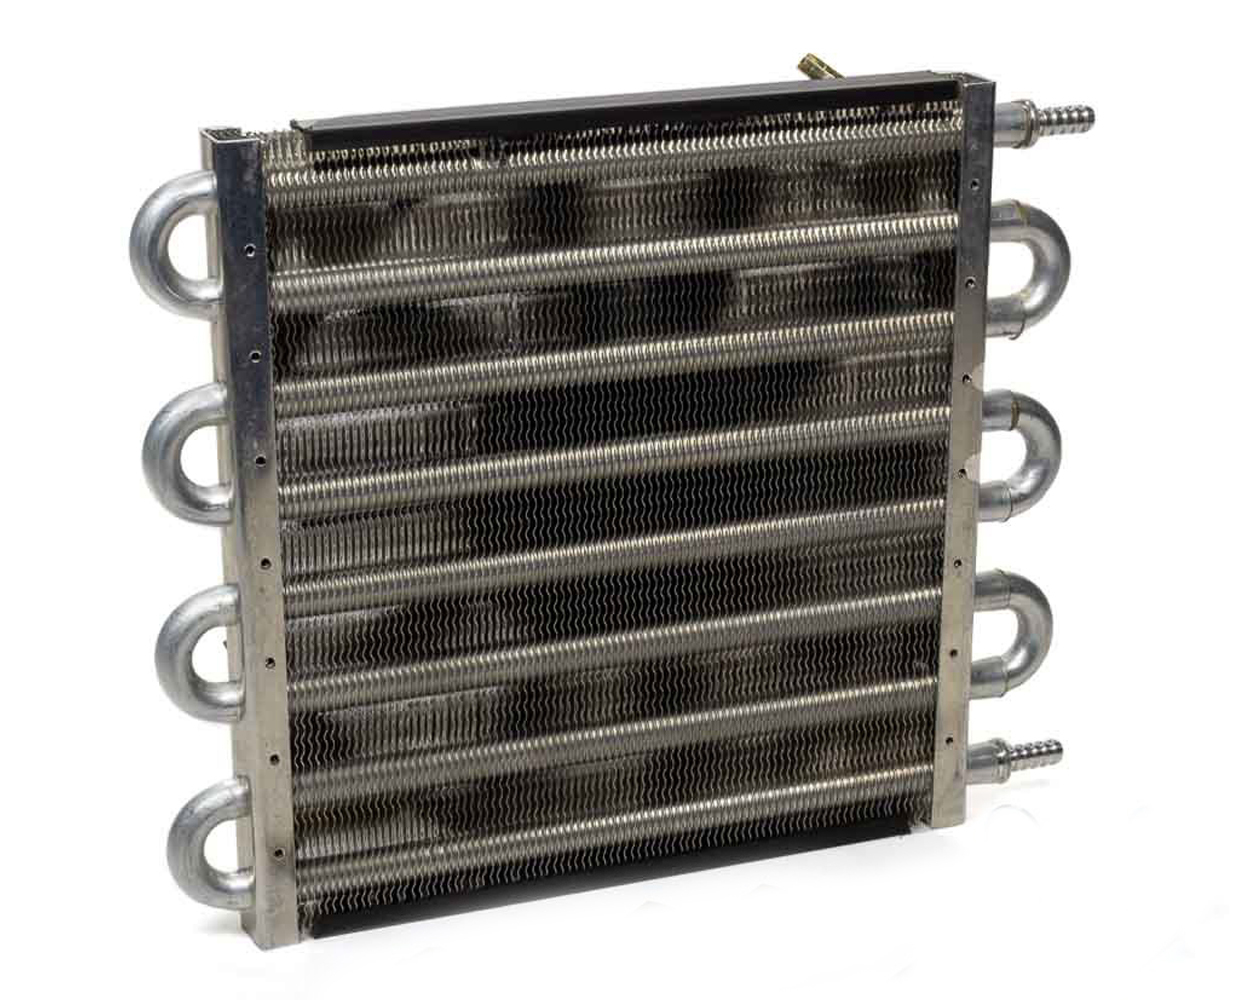 Perma Cool 12511 Fluid Cooler and Fan, Maxi-Cool Jr, 8 Pass, 12-1/2 x 10 x 3 in, Tube Type, 11/32 in Hose Barb Inlet / Outlet, Fittings / Hardware, 10 in Fan, Aluminum, Natural, Universal, Each